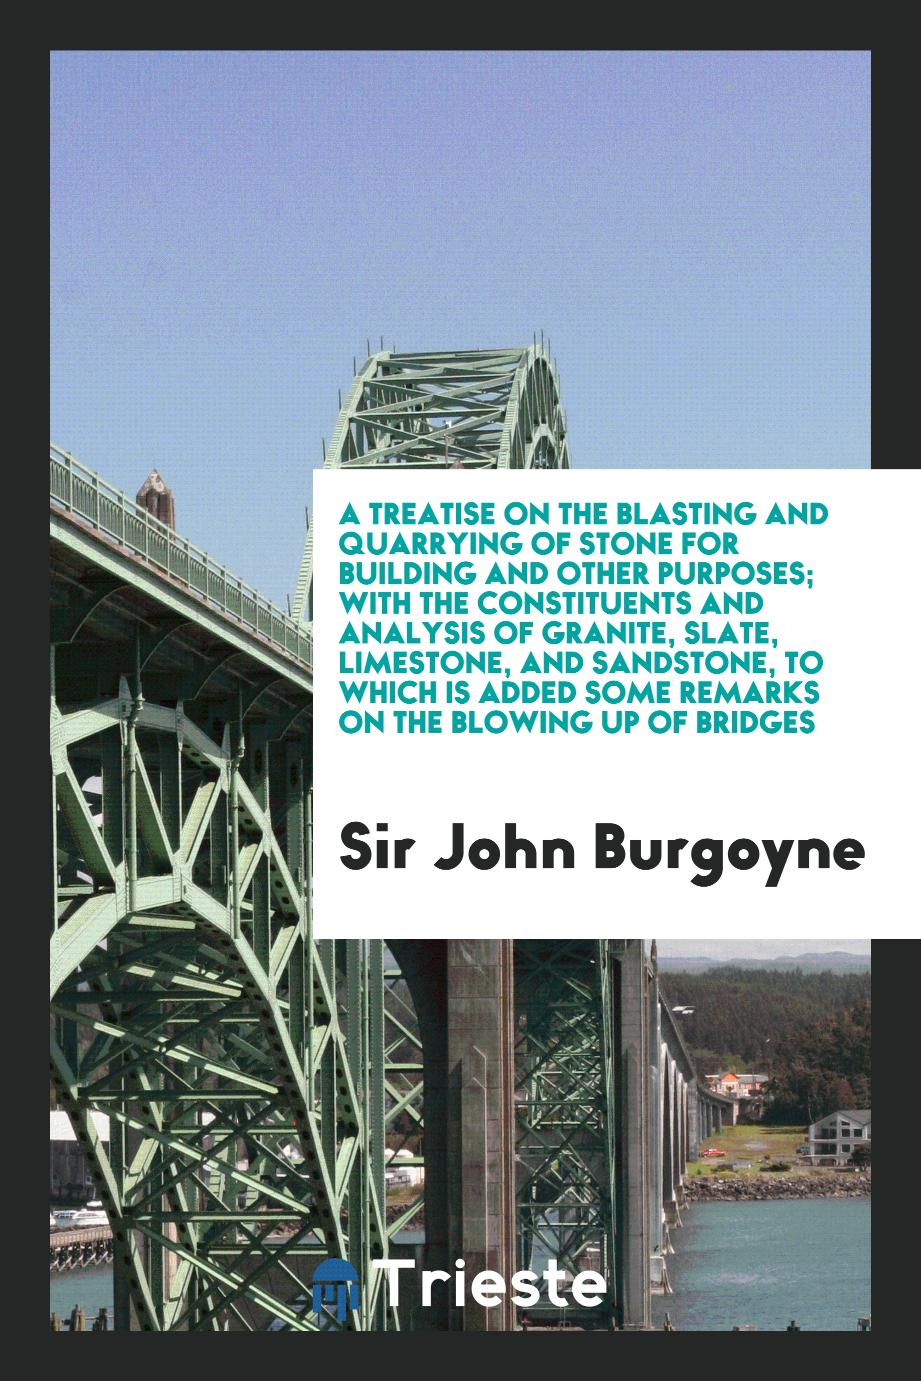 A Treatise on the Blasting and Quarrying of Stone for Building and Other Purposes; With the Constituents and Analysis of Granite, Slate, Limestone, and Sandstone, to Which Is Added Some Remarks on the Blowing up of Bridges